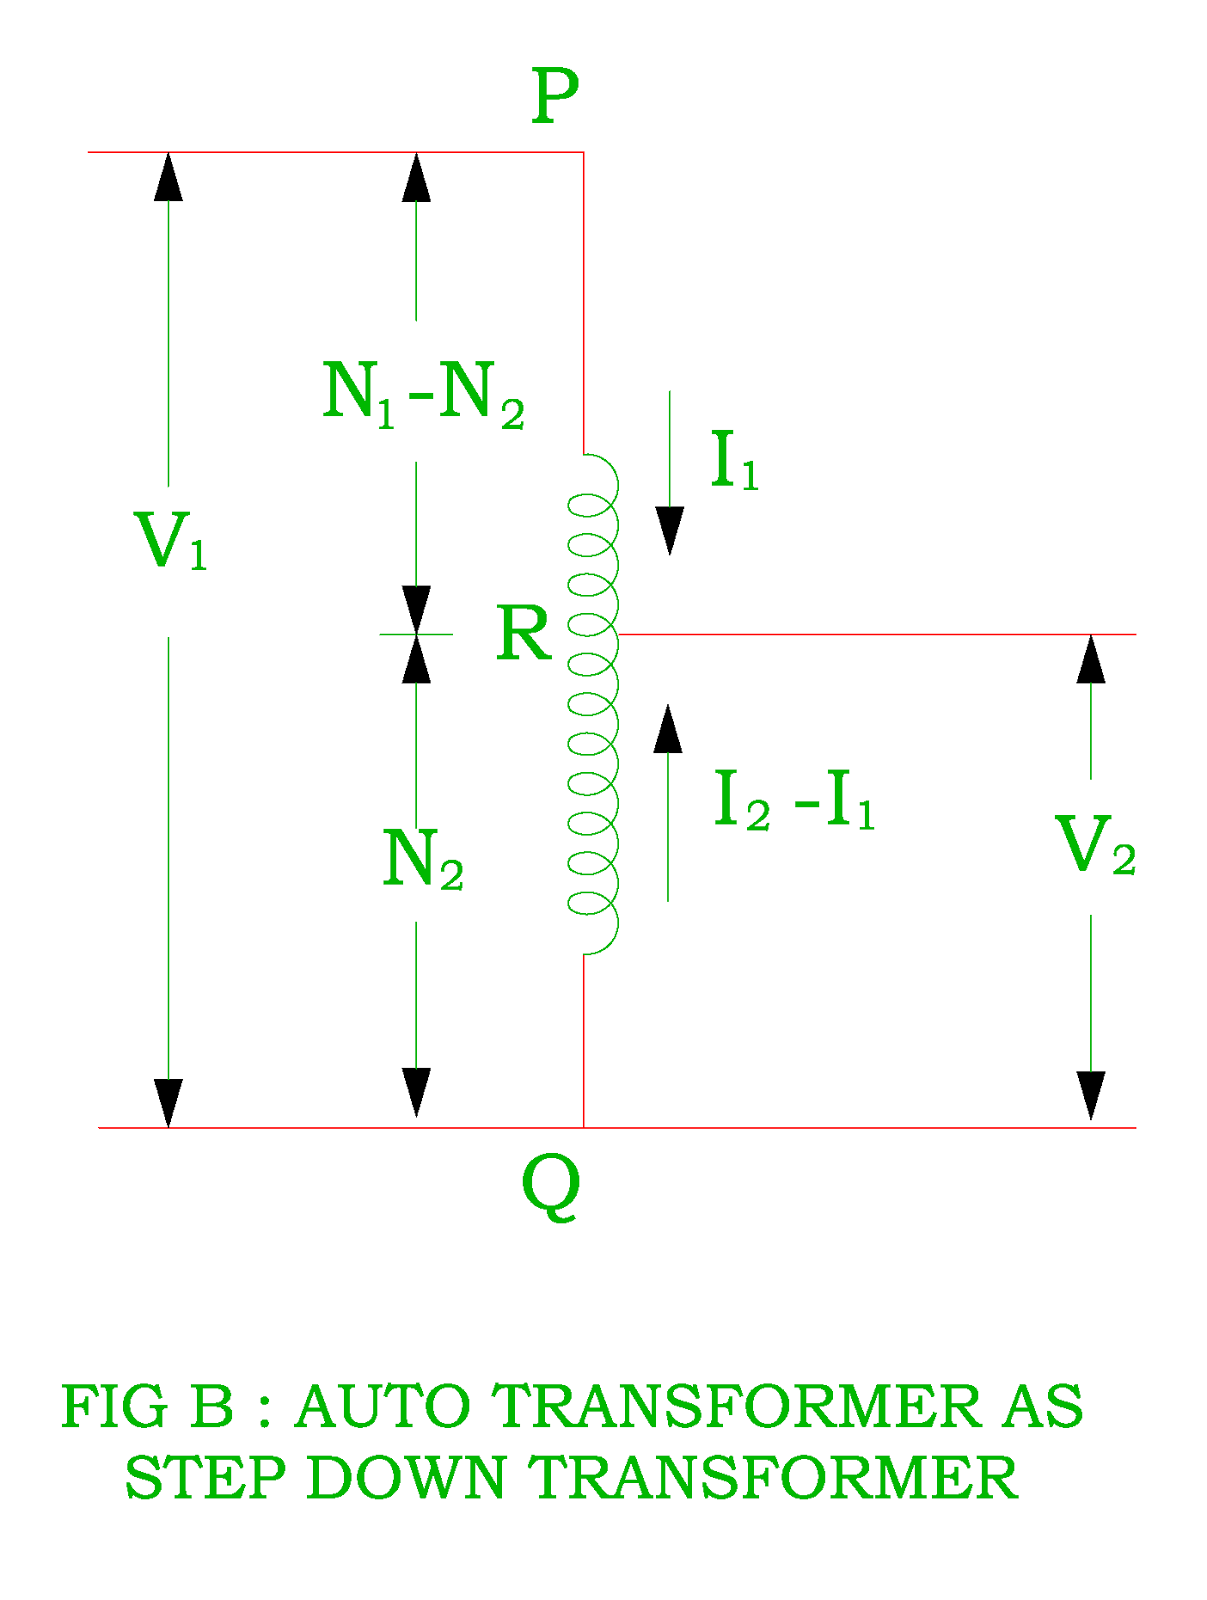 Auto Transformer Wiring Diagram 1996 Toyota Tacoma Parts Working Of Saving In Copper Material And As Step Down Png